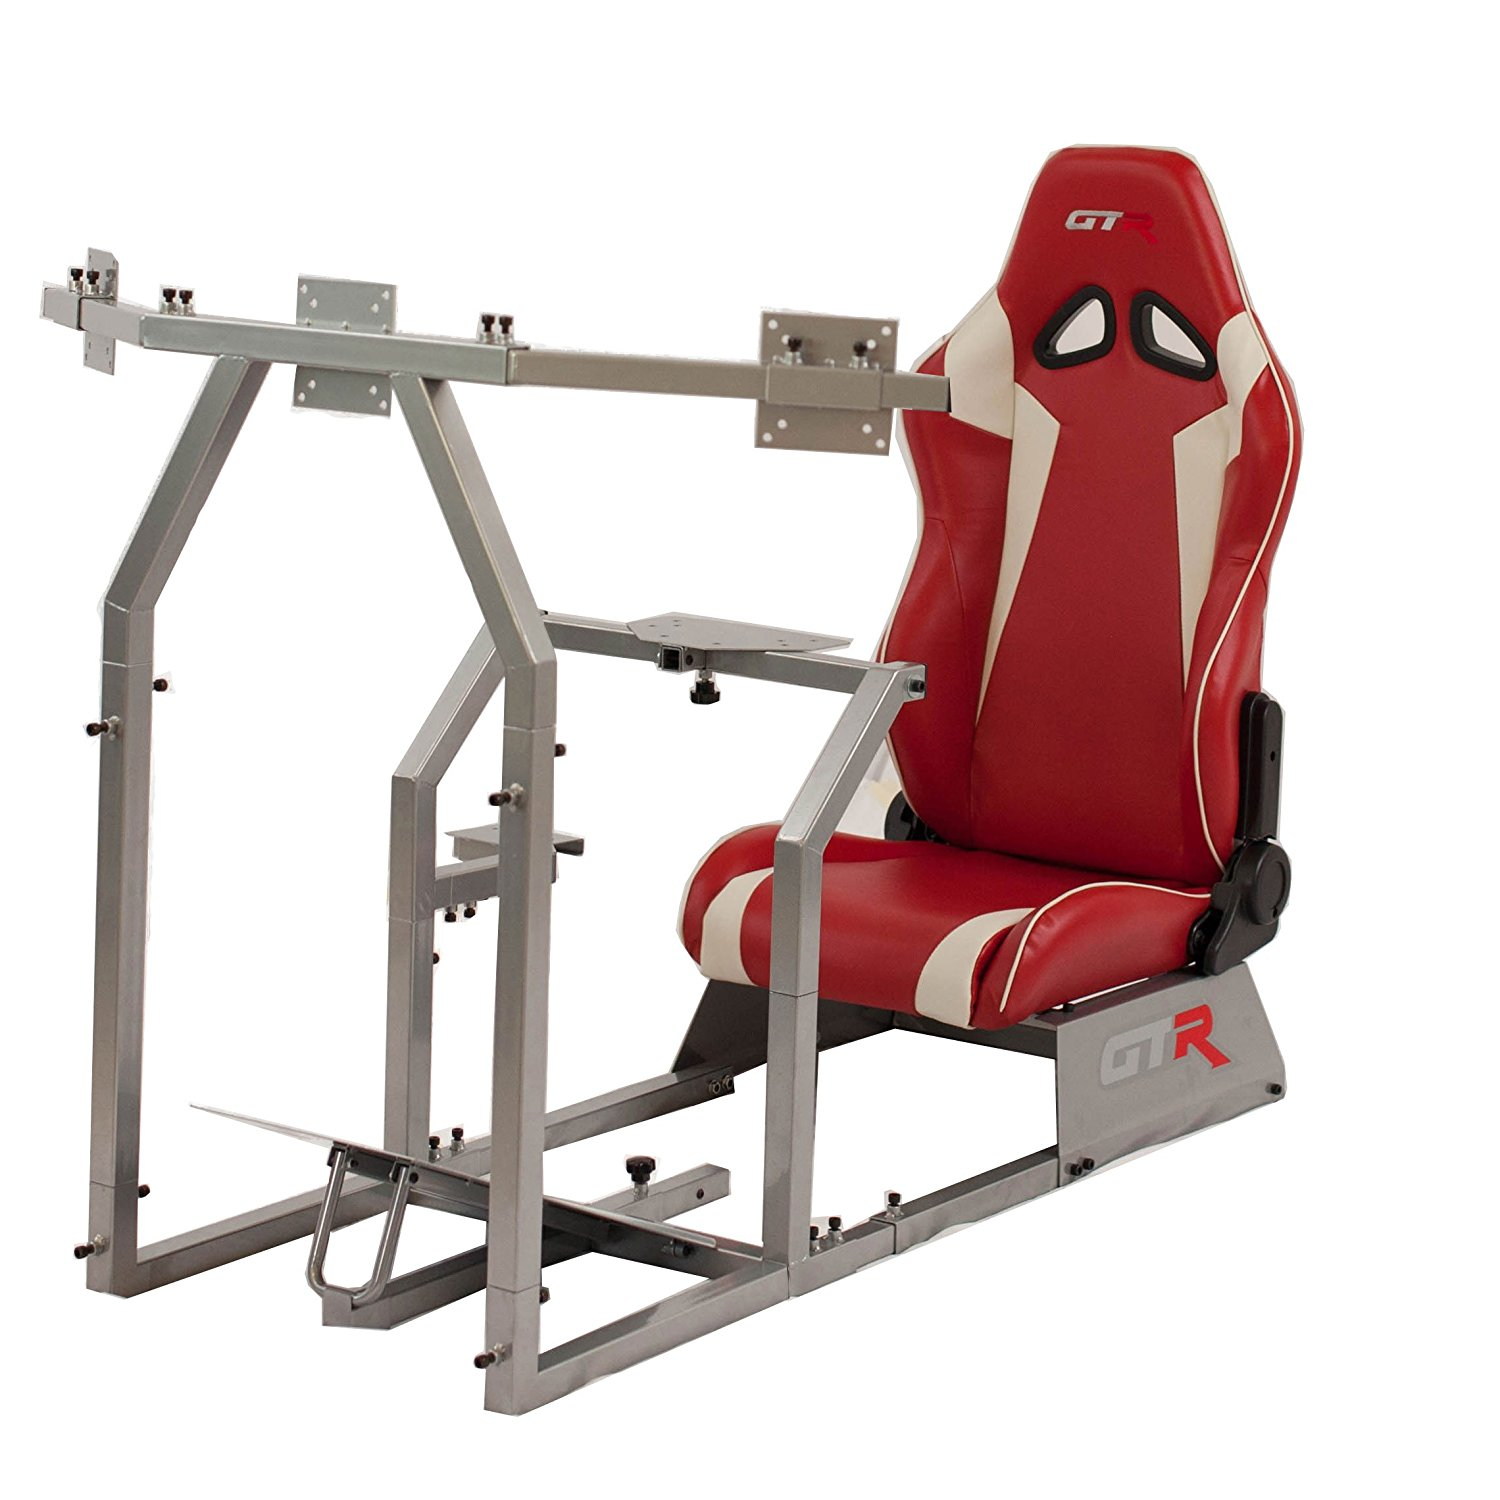 GTR Racing Simulator GTAF-S-S105LRDWHT - GTA-F Model (Silver) Triple or Single Monitor Stand with Red/White Adjustable Leatherette Seat, Racing Simulator Cockpit gaming chair Single Monitor Stand